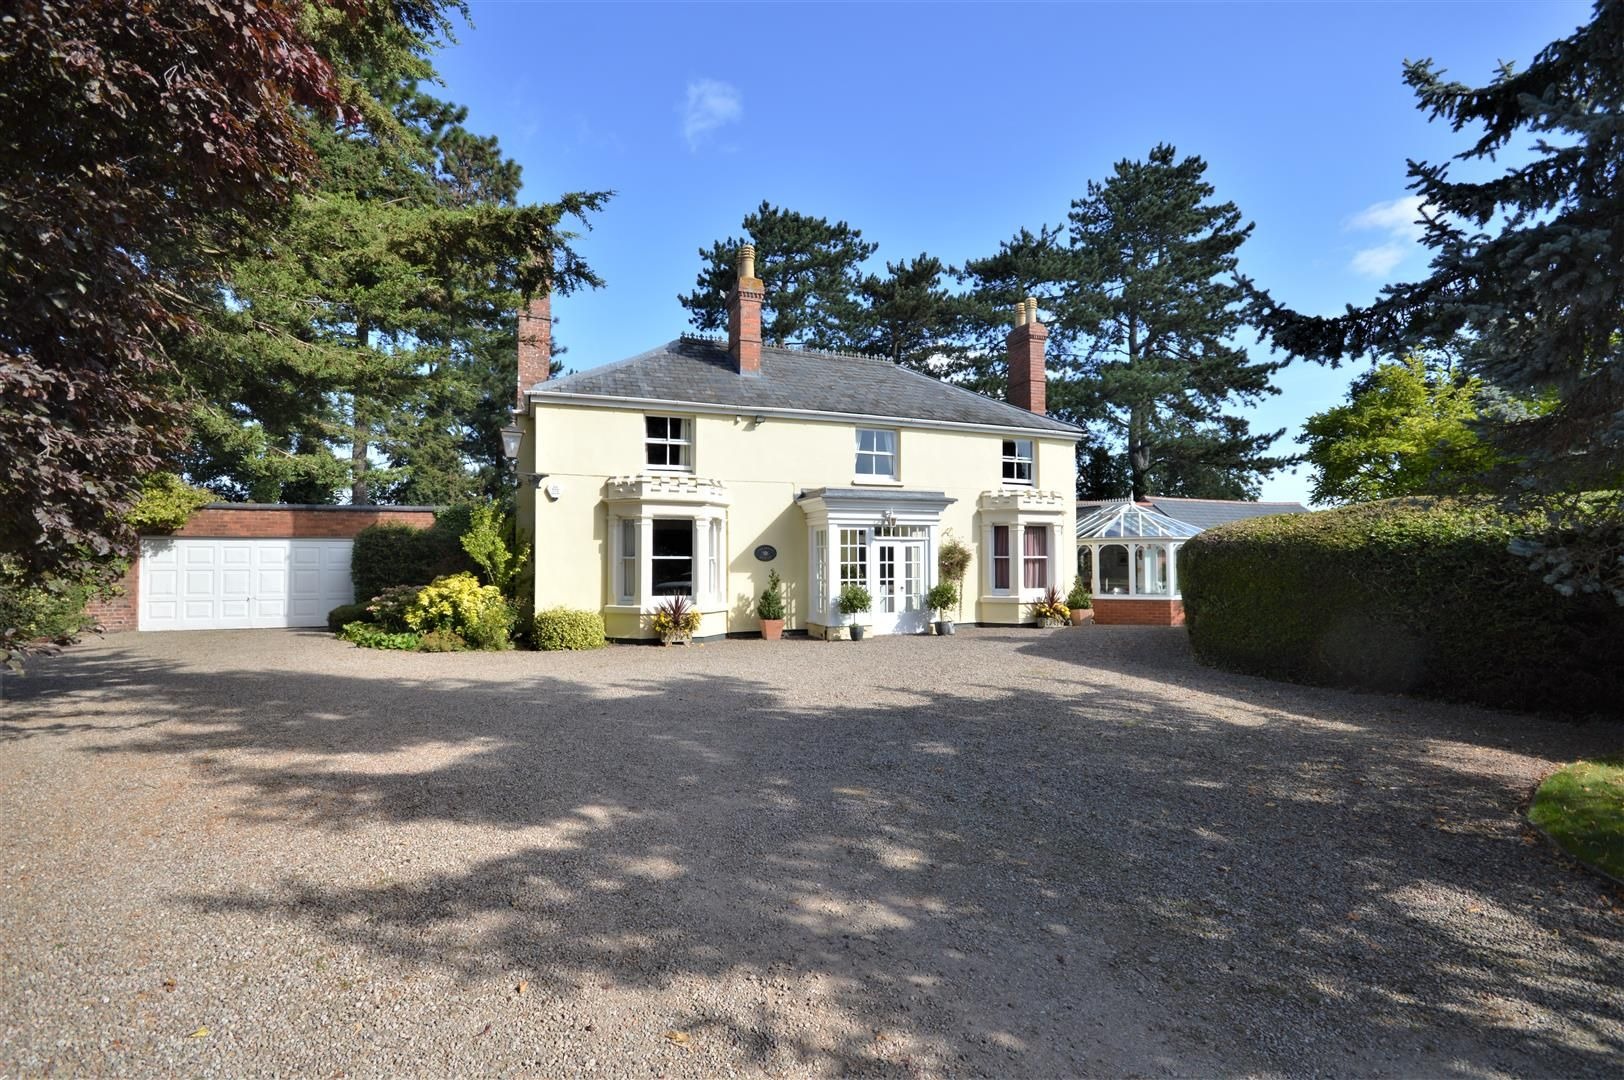 5 bed detached for sale in Stretton Sugwas  - Property Image 2